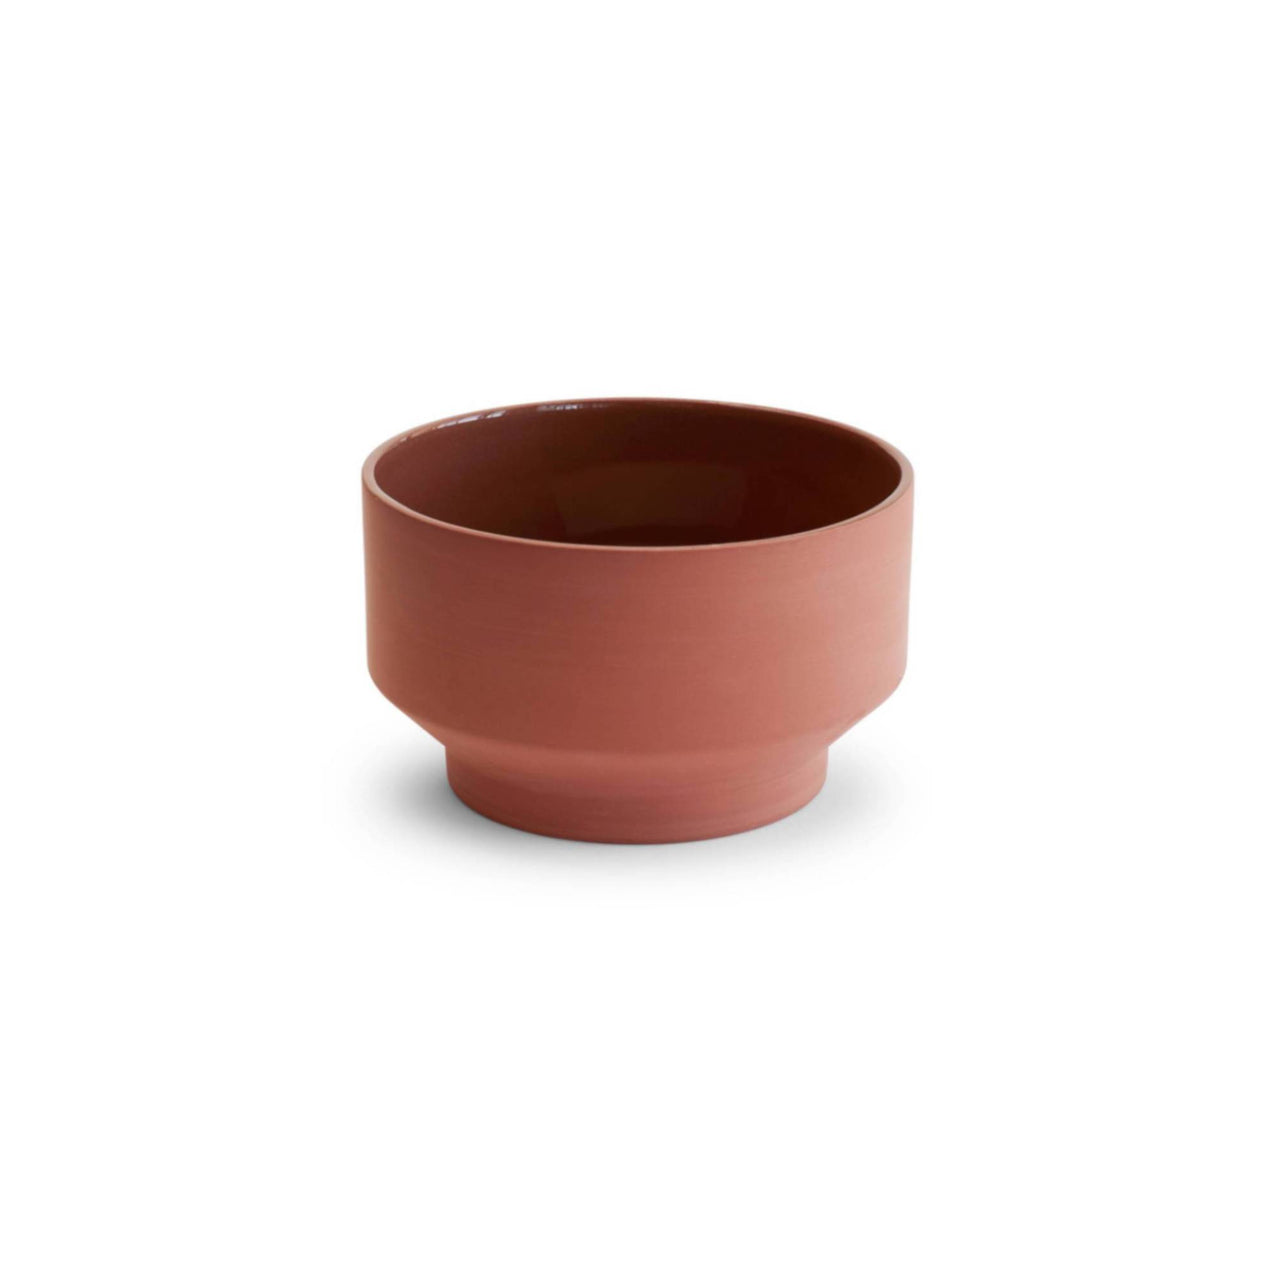 Edge Bowl: Small - 6.7